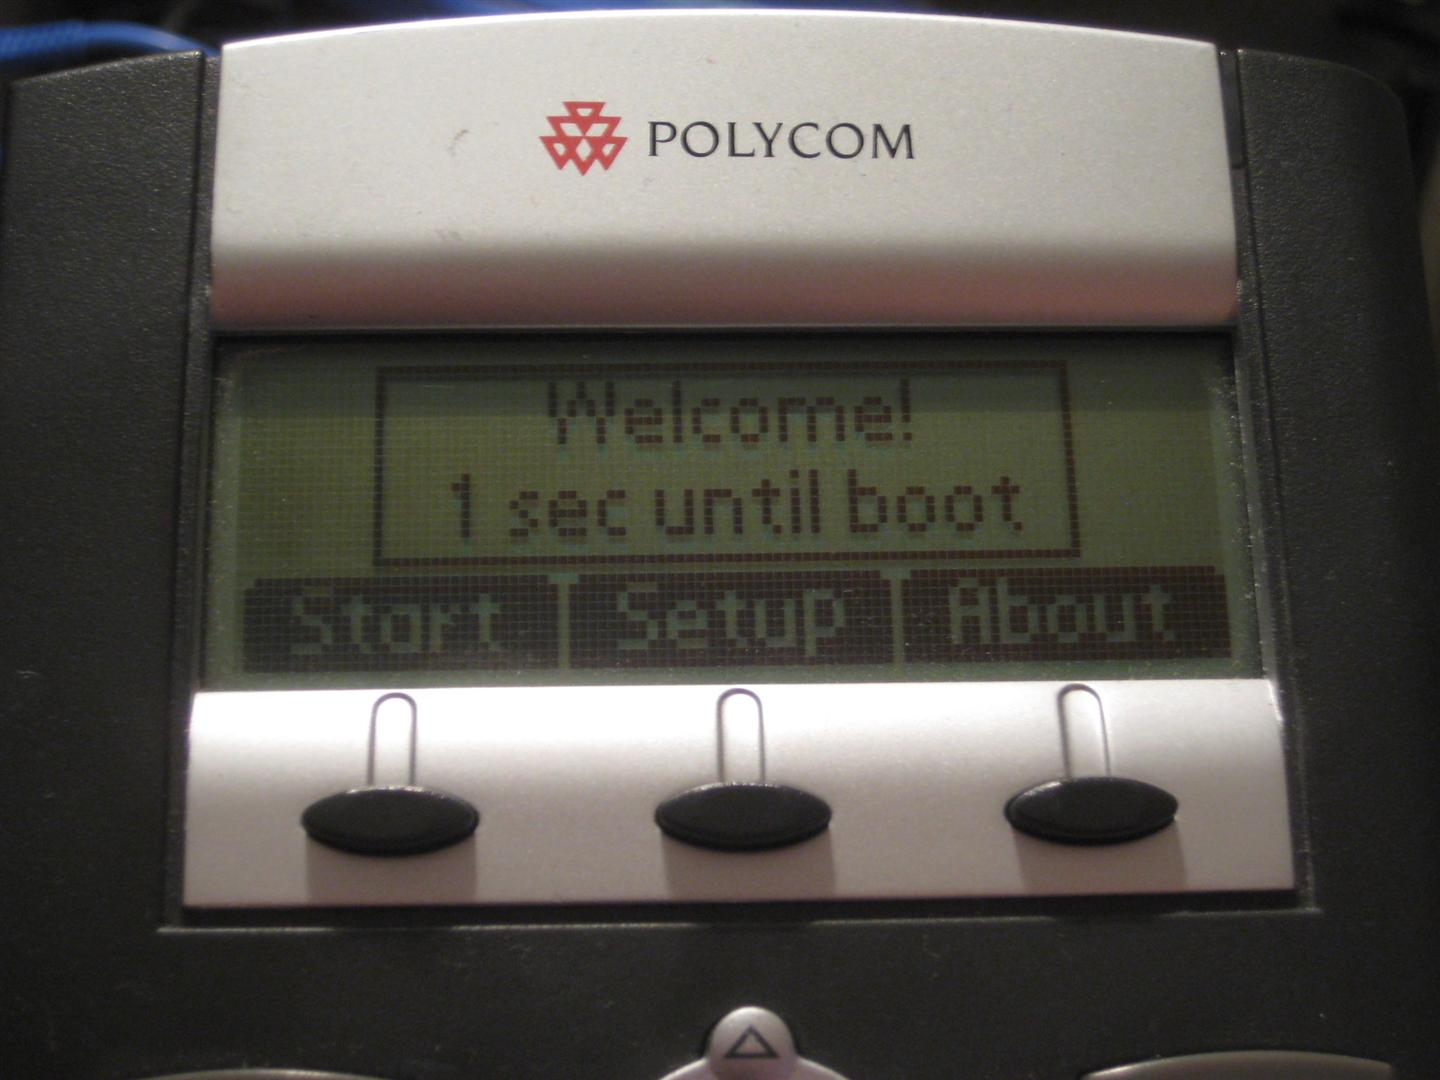 The Life of Kenneth: How to Configure a Polycom Soundpoint IP 330